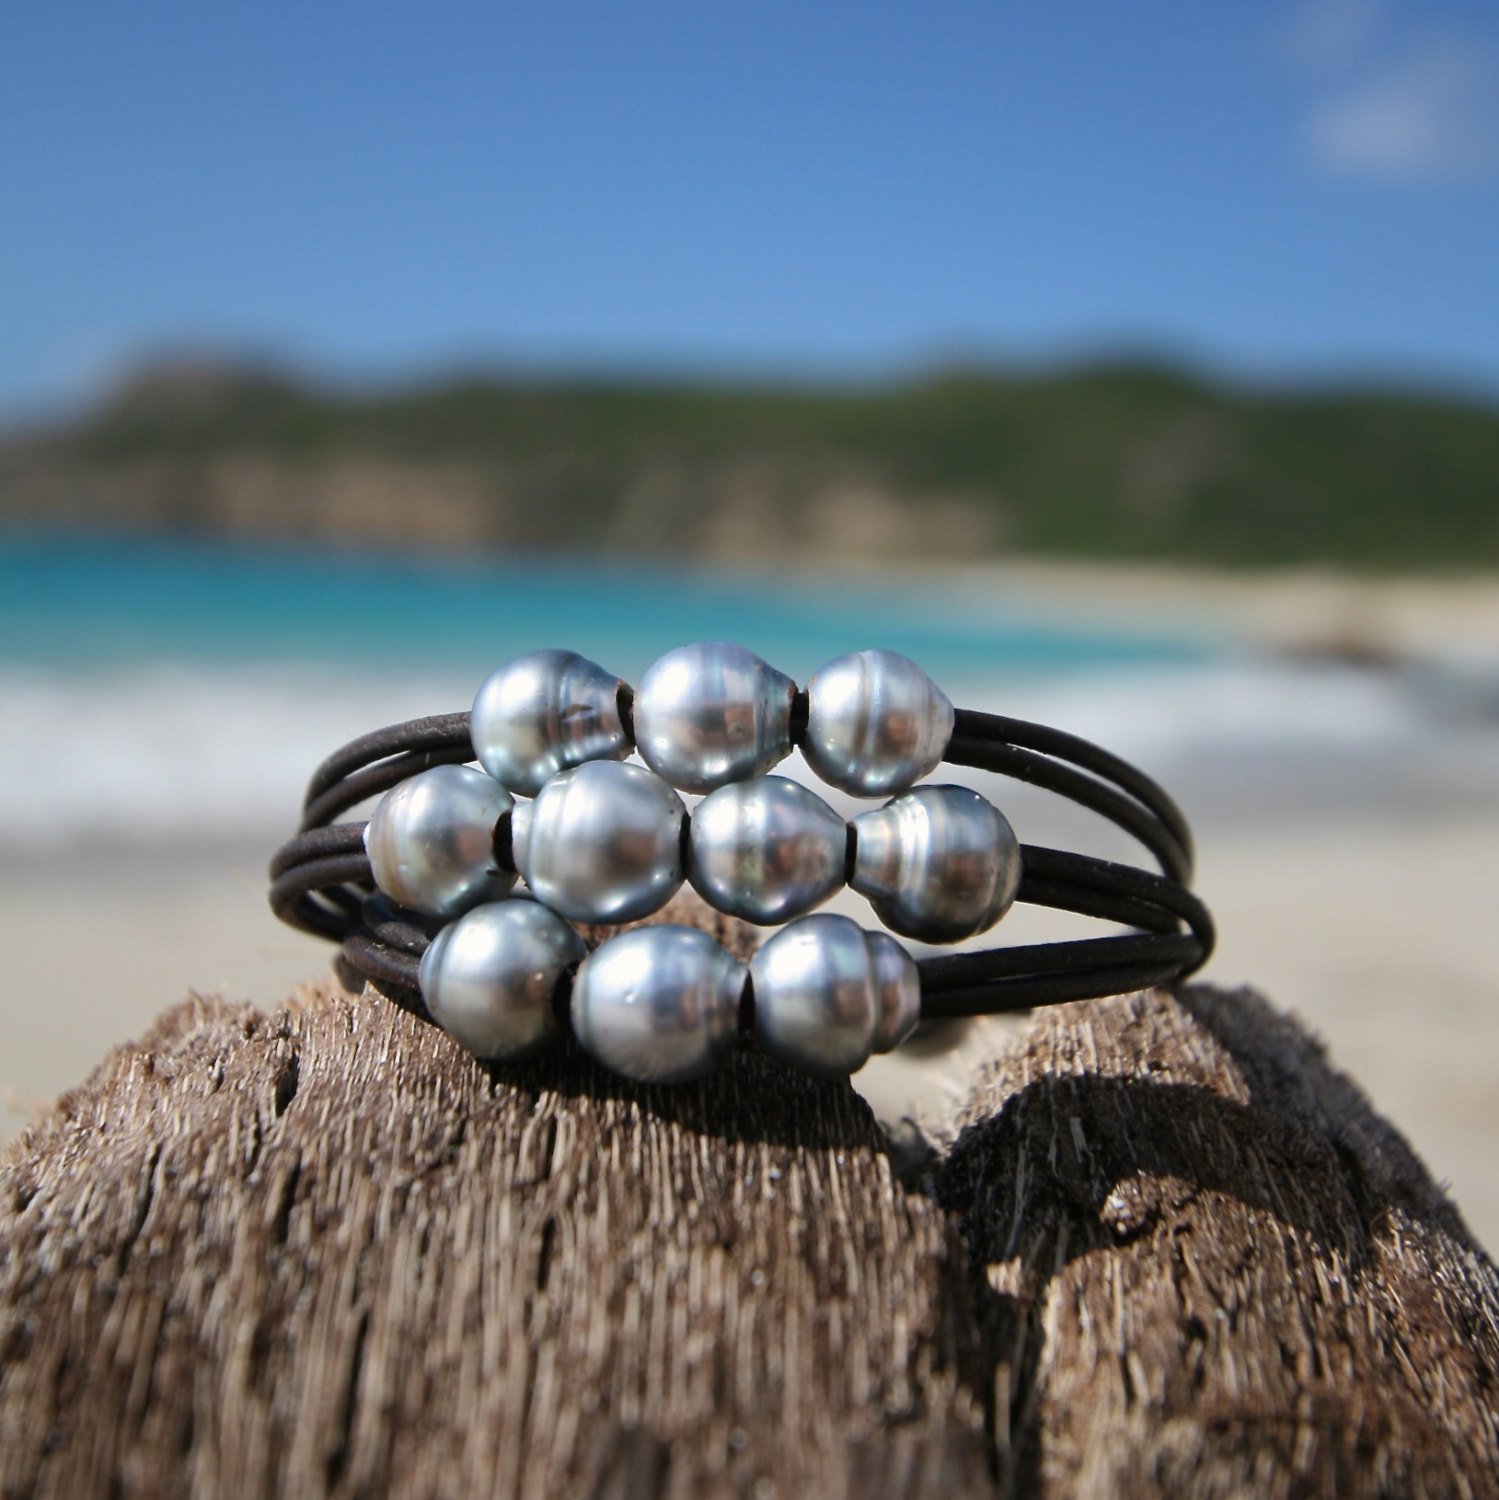 Triple wrap of 11 Tahitian pearls bracelet, cultured pearls, St barthelemy island design, black pearls, boho, beach jewelry, hippiechic,